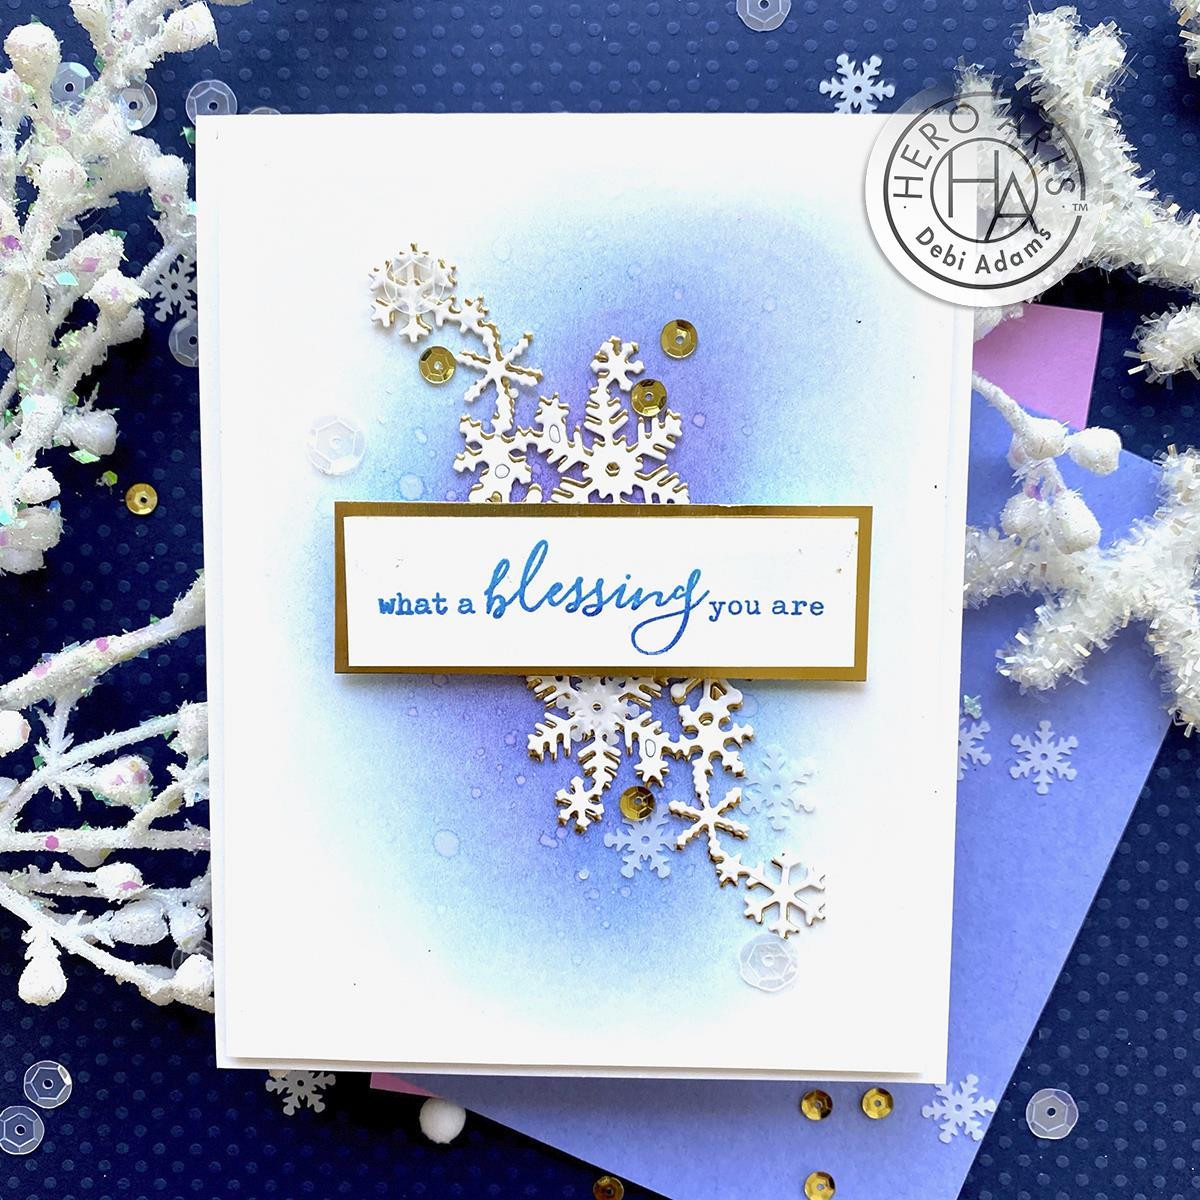 Holiday Blessings, Hero Arts Clear Stamps - 085700928656